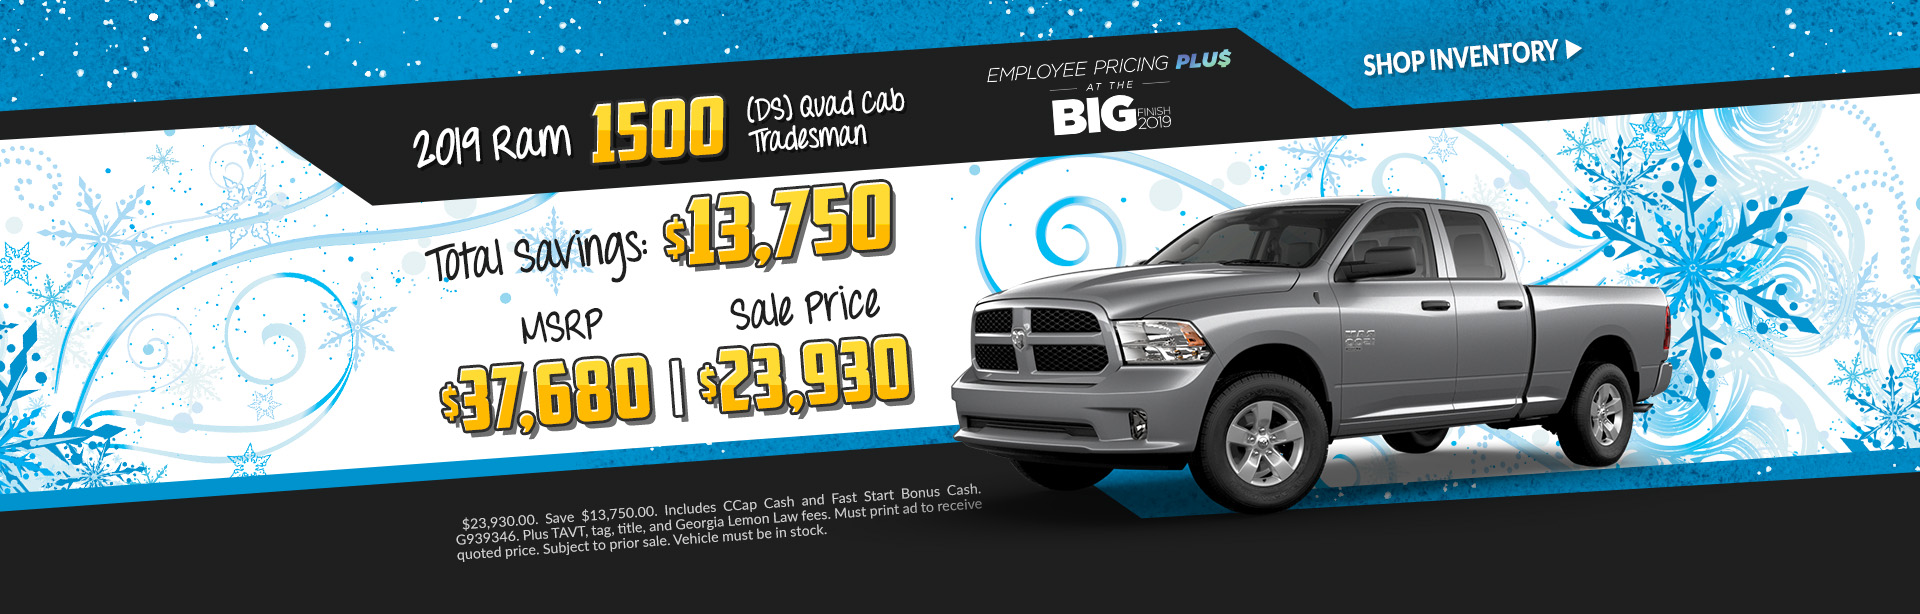 New 2019 Ram 1500 Crew Cab Big horns - Lease for $329 per month